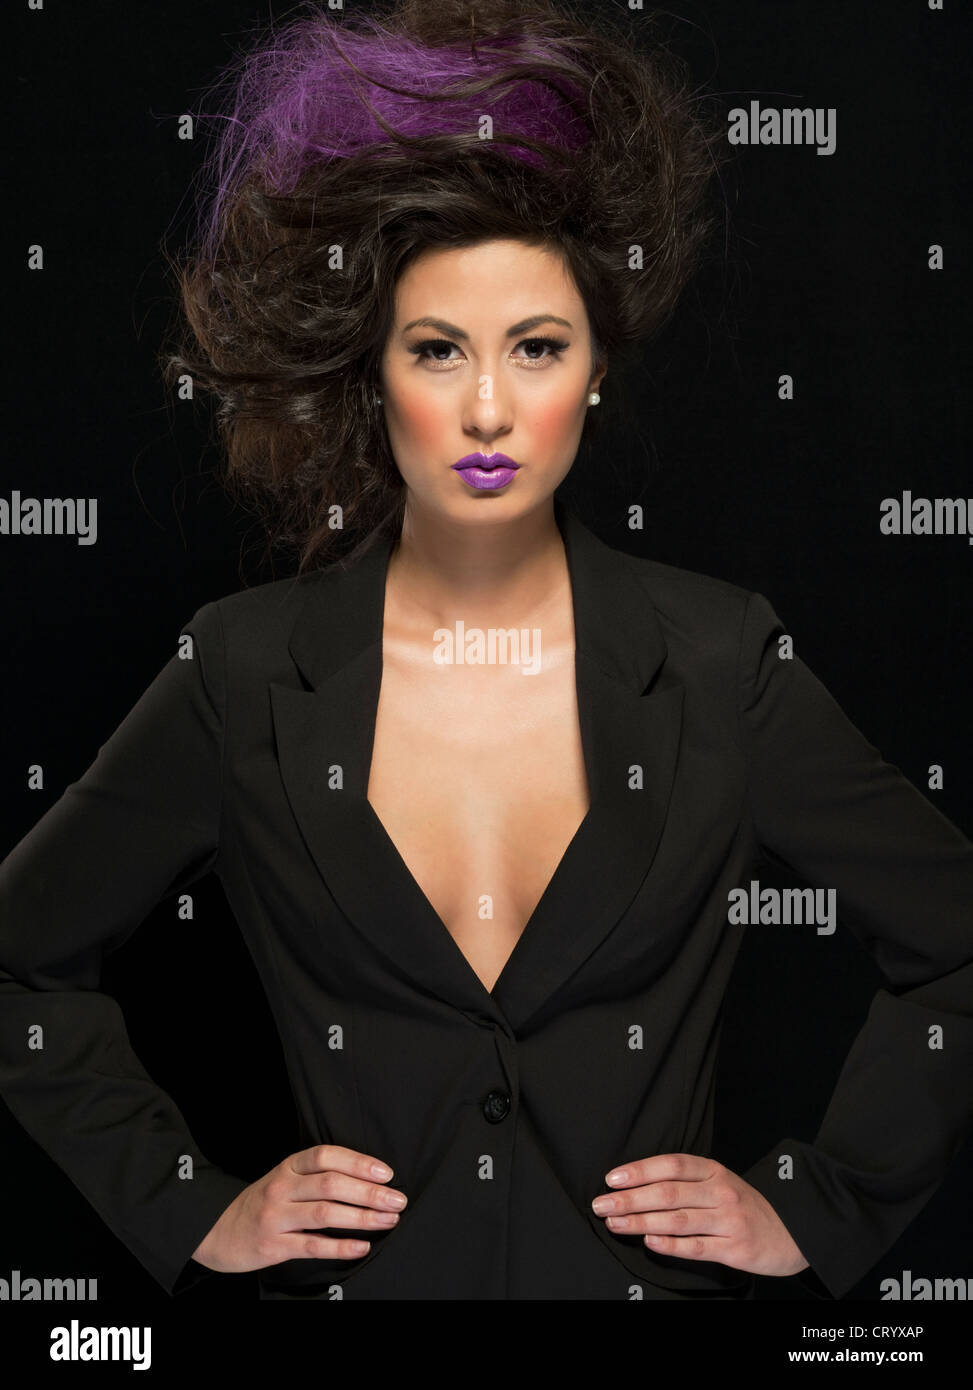 Imposing woman with black jacket hands on hips, purple tint to the hair and matching purple lipstick Stock Photo